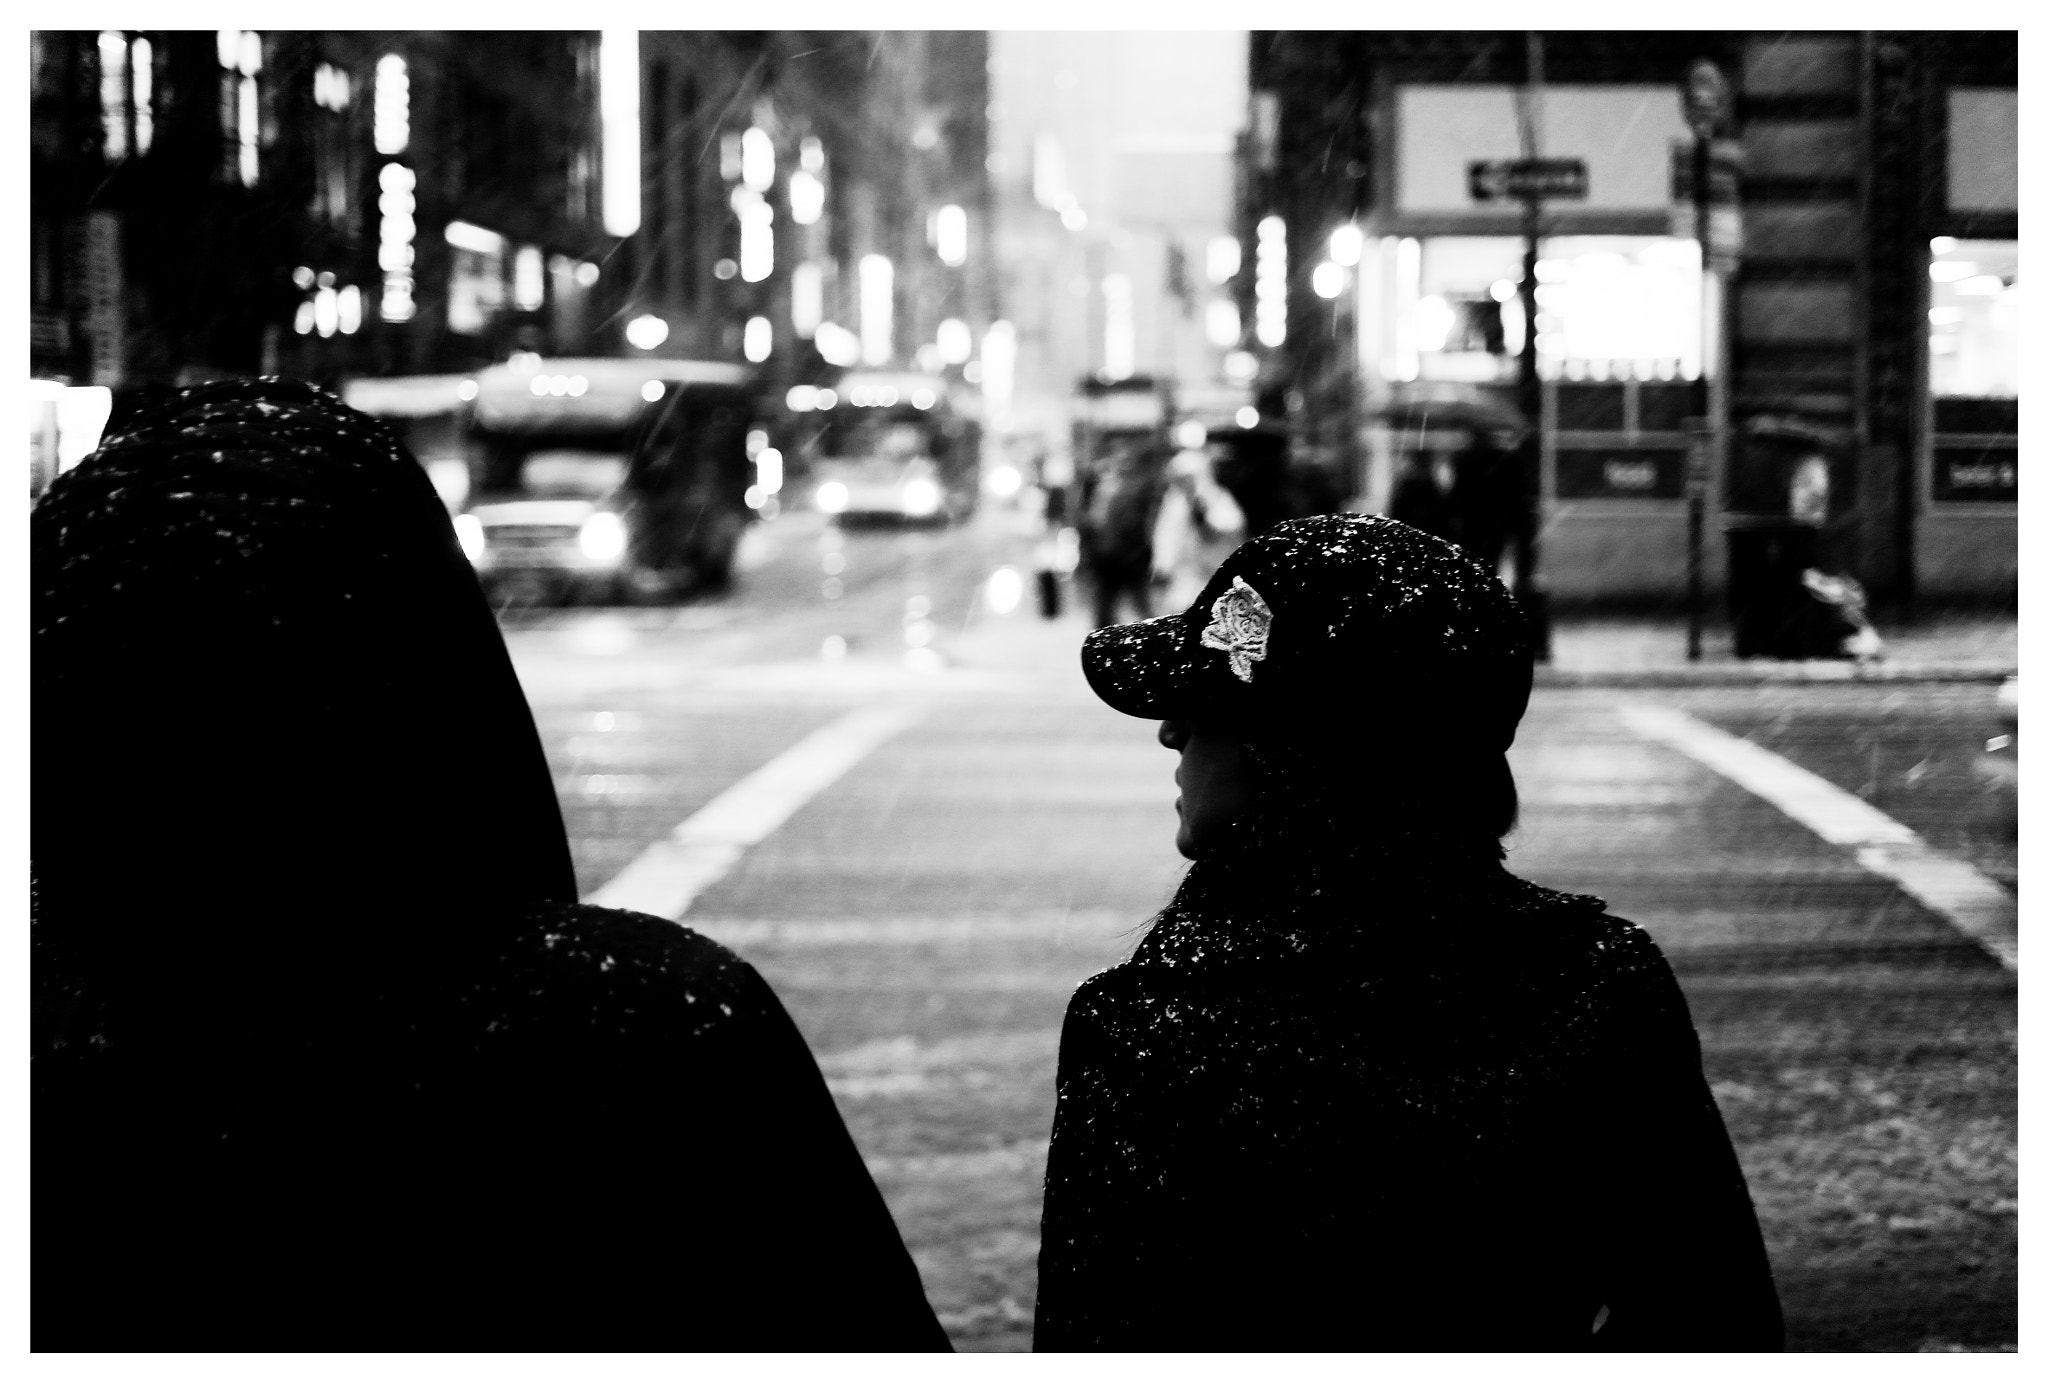 Photograph New York Snow Storm Diary I by Kwanghyun Chi on 500px